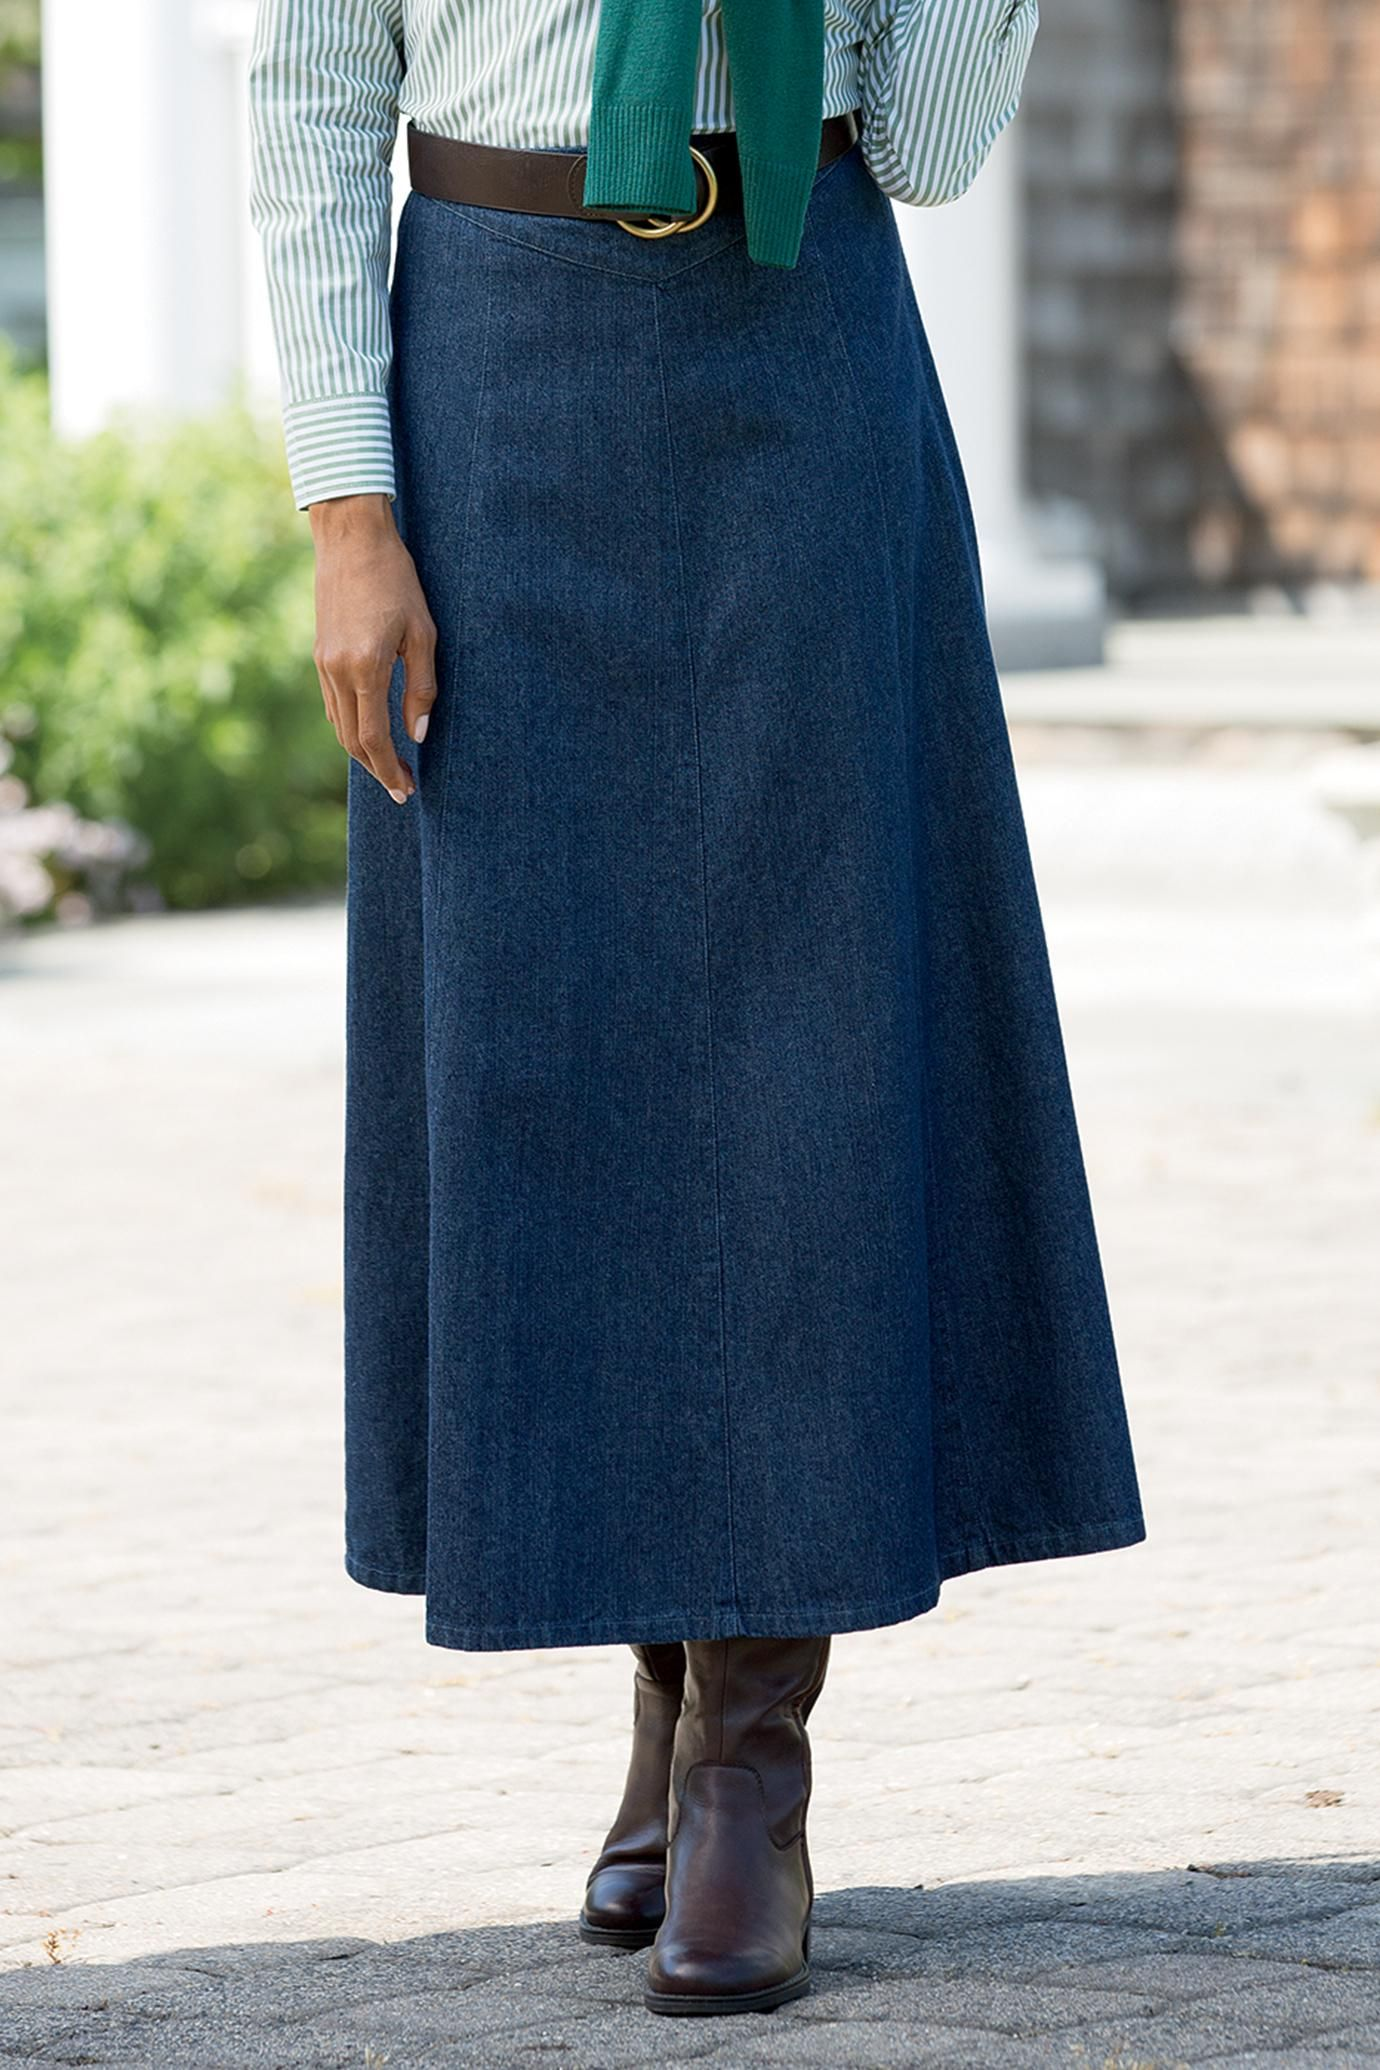 c731ea1b9 Easy-to-wear casual jean skirt in a long, flattering A-line silhouette.